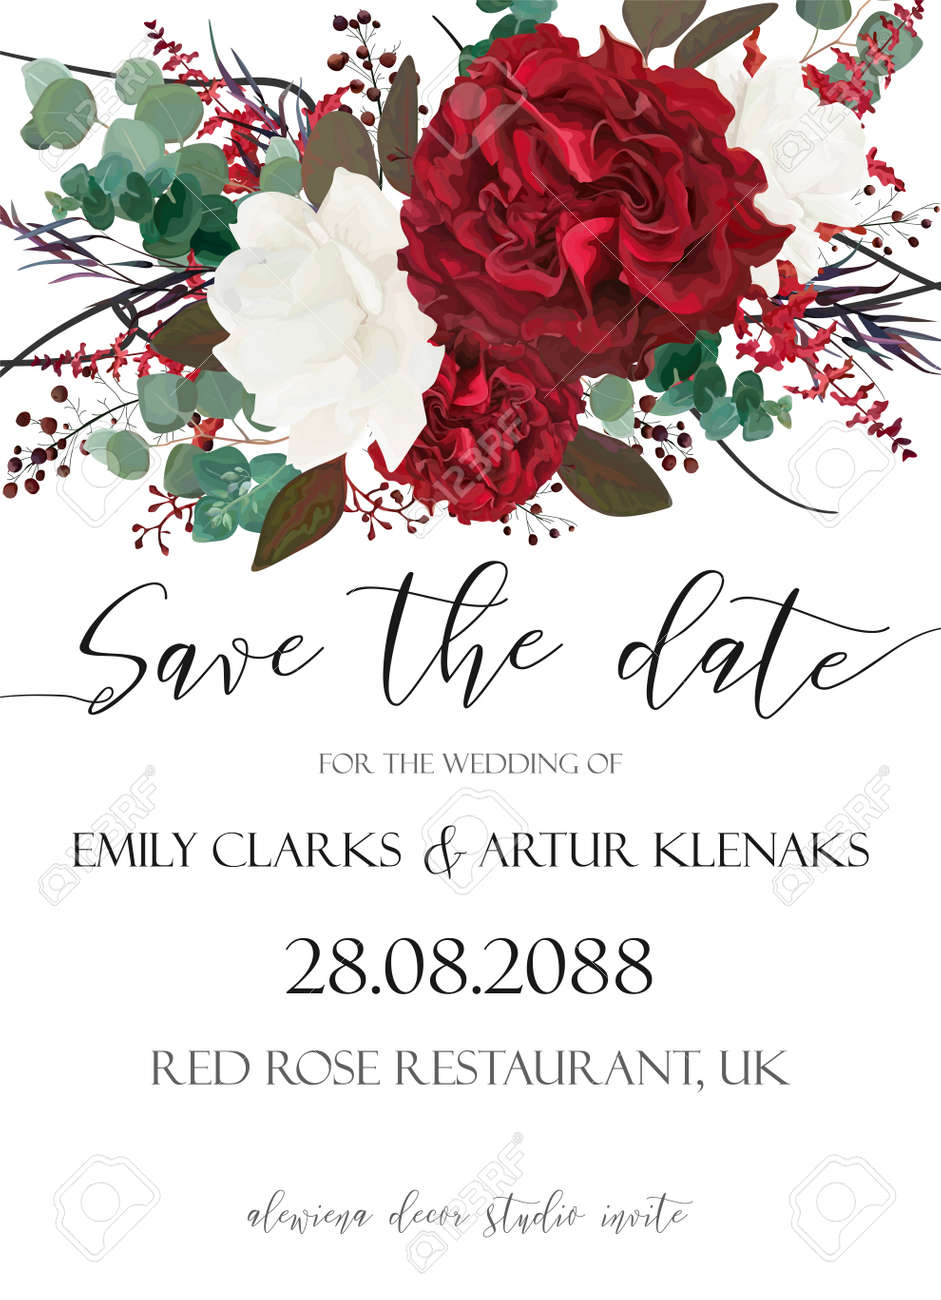 Dorable Save The Date Invitations Wedding Pattern - Invitations and ...